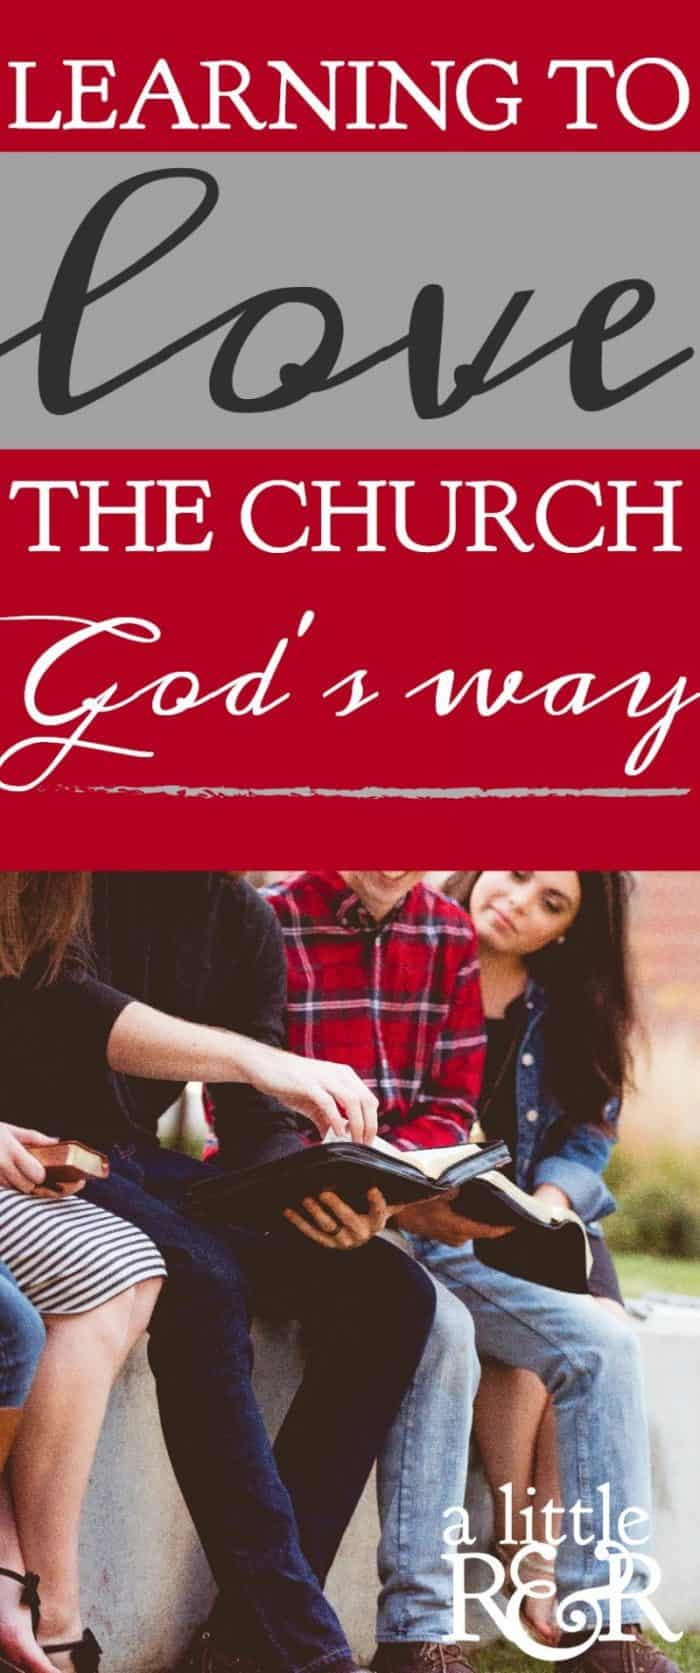 We can allow our negative experiences in the church to disillusion us, or we can learn to love the church God's Way. Here is a resource that will help you to see the church through God's eyes.